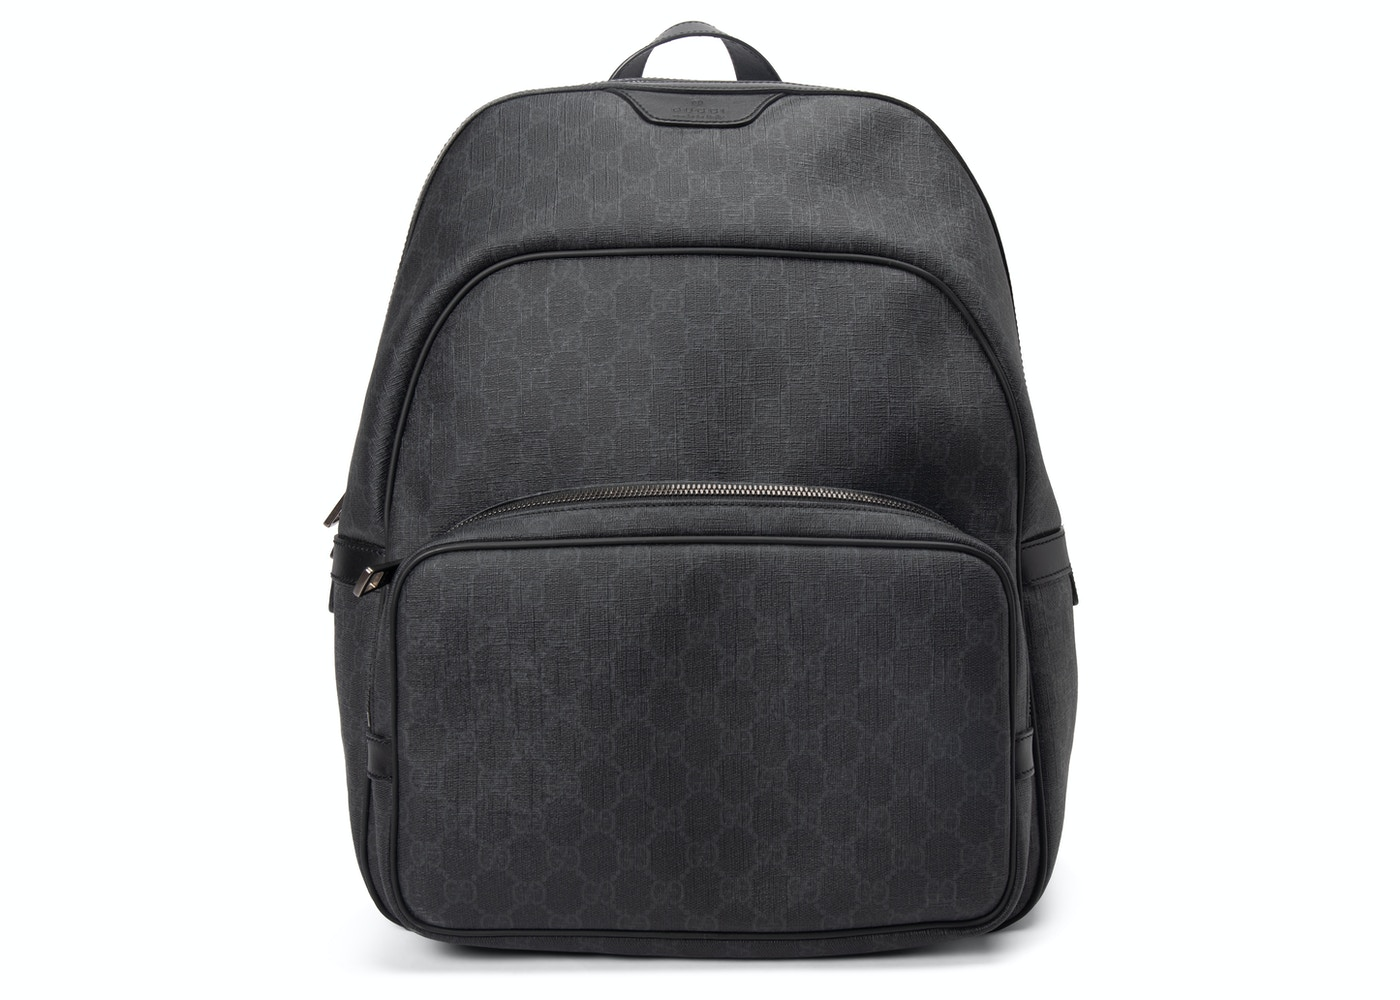 dde16aa2b3bd Gucci GG Supreme Backpack Monogram GG Medium Black. Monogram GG Medium Black